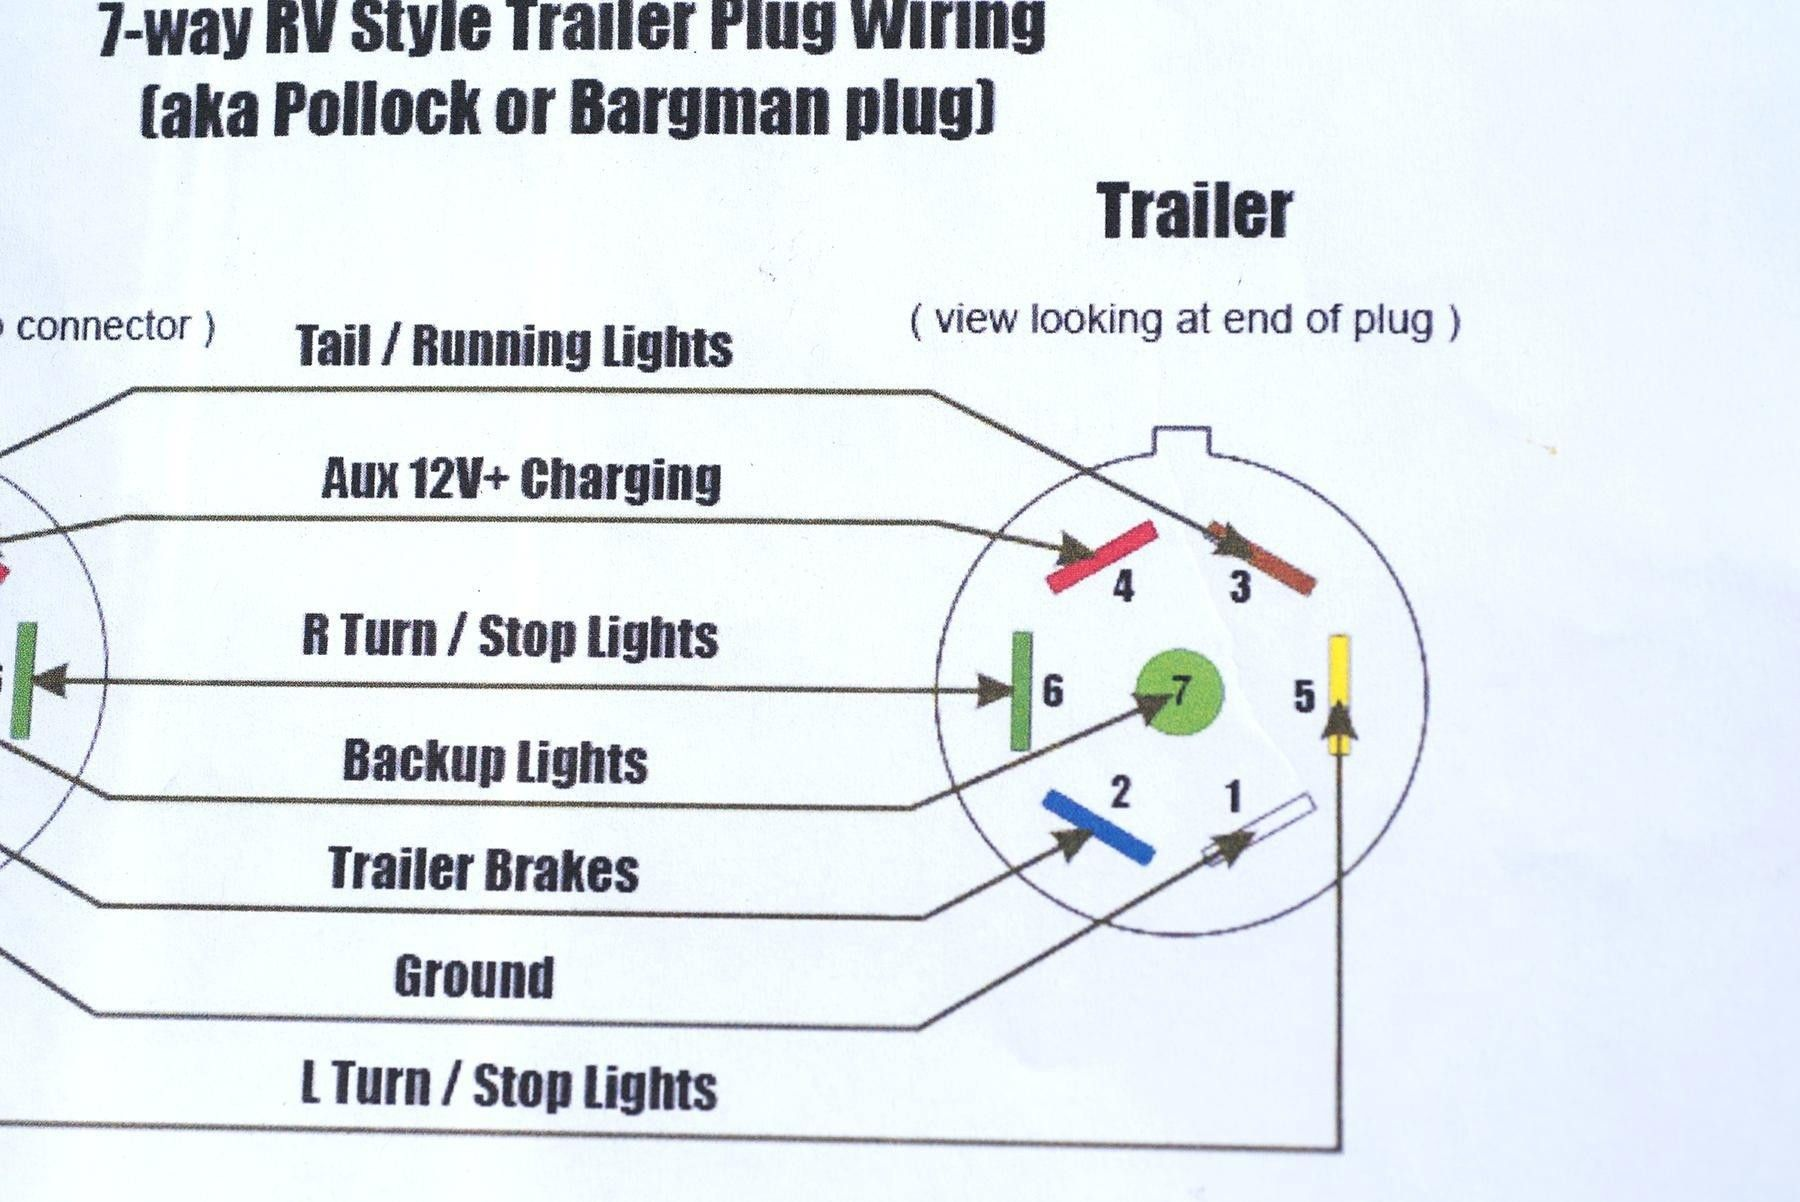 New 1998 Dodge Ram 1500 Trailer Wiring Diagram Diagram Diagramsample Diagramtemplate Wiring Trailer Wiring Diagram Trailer Light Wiring Boat Trailer Lights